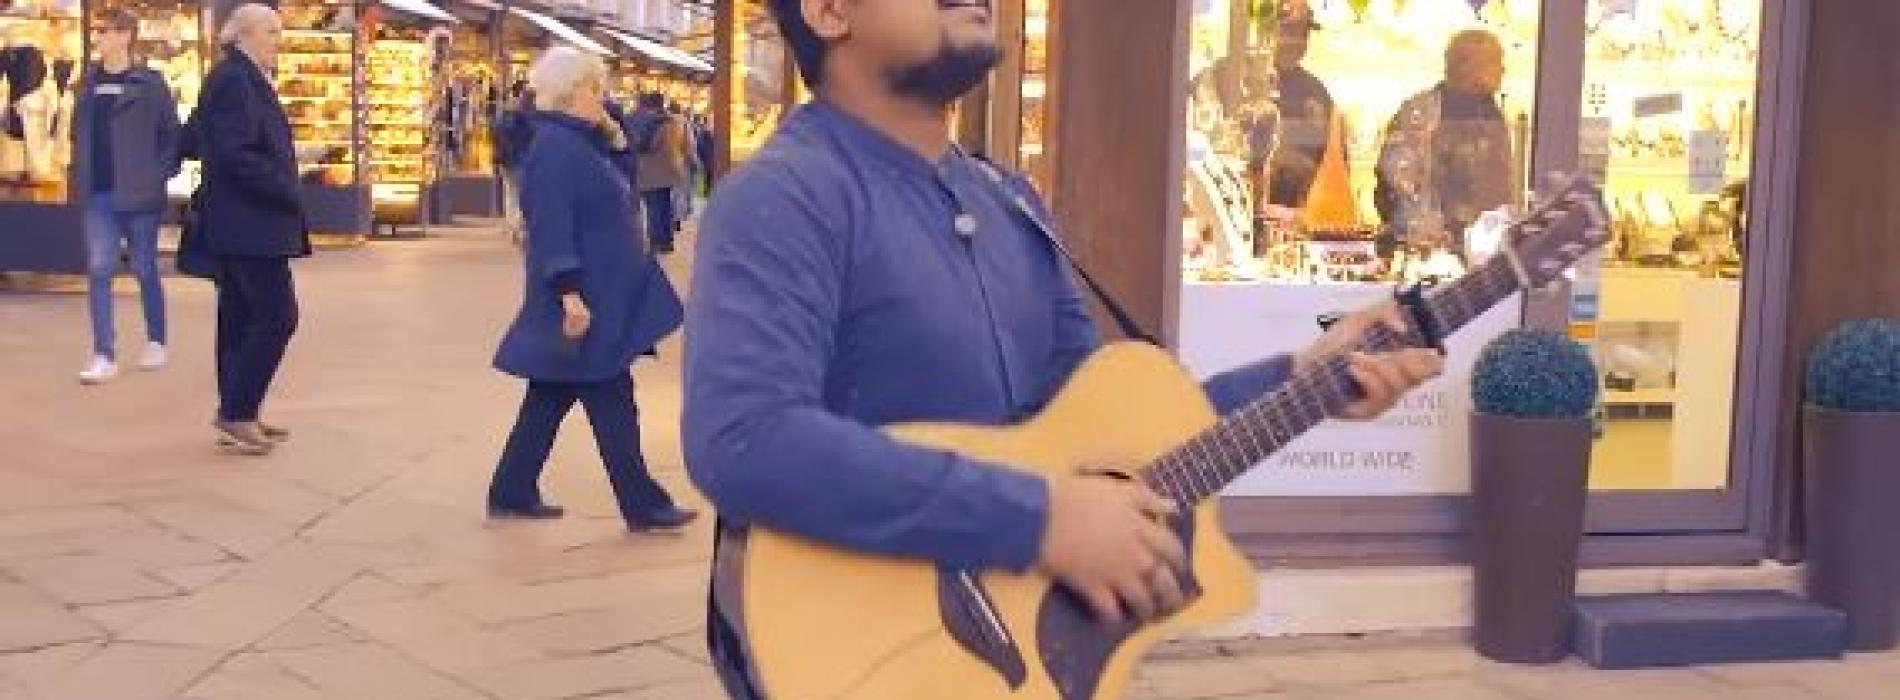 මාවතේ SANUKA – Sansara Sihine (Strolling the streets in Venice, Italy) Acoustic Version